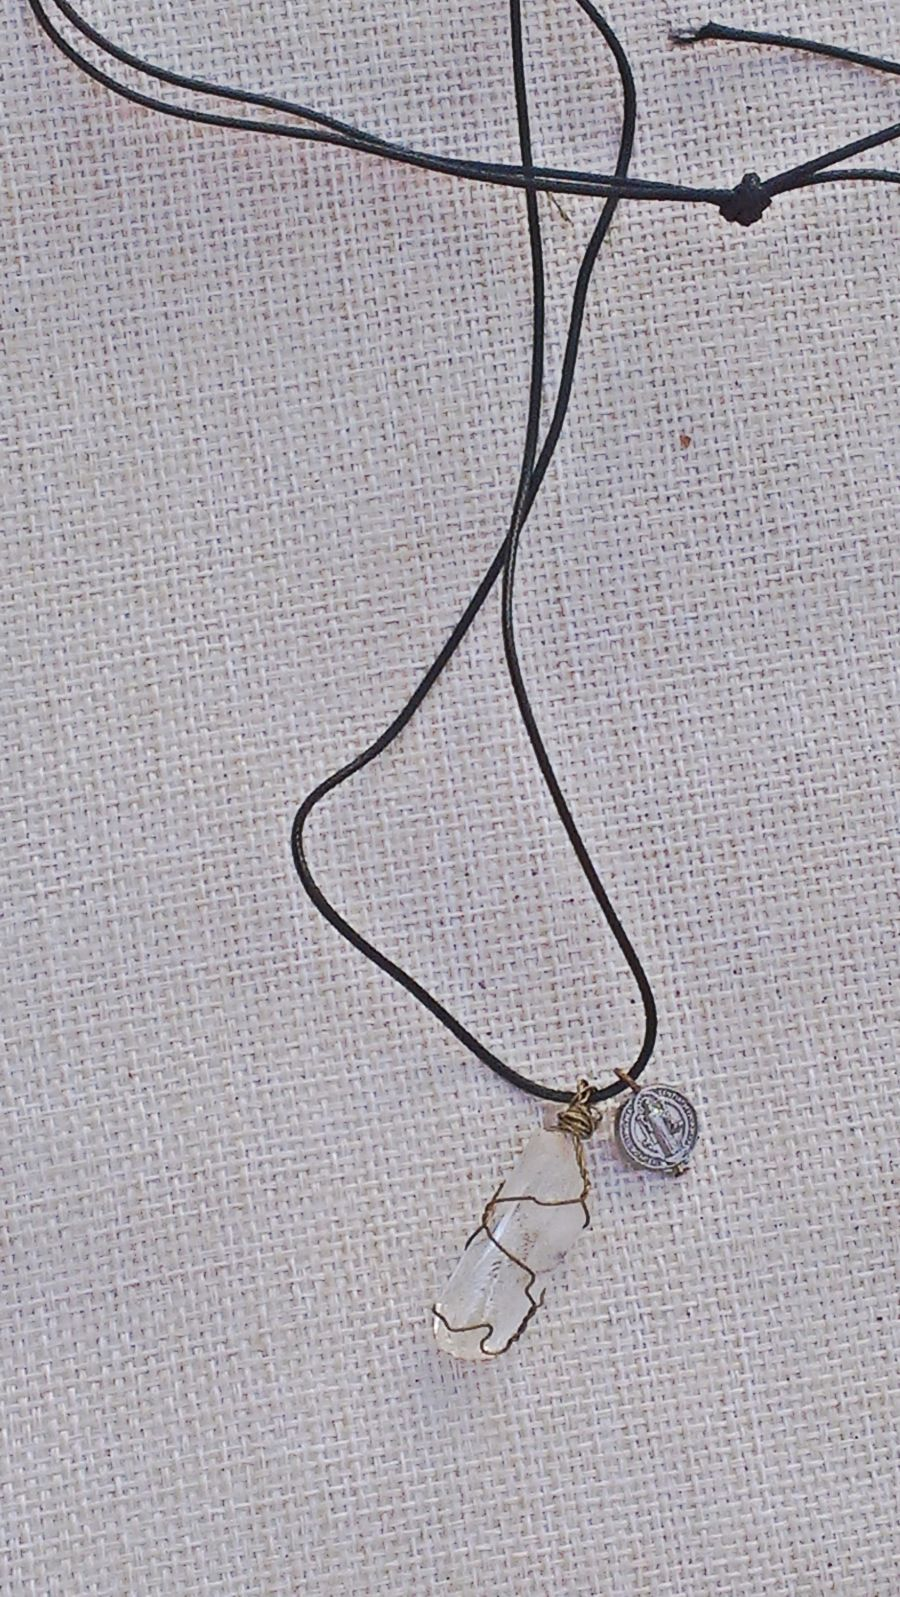 Wire wrapped quartz crystal with st benedict charm pendant necklace